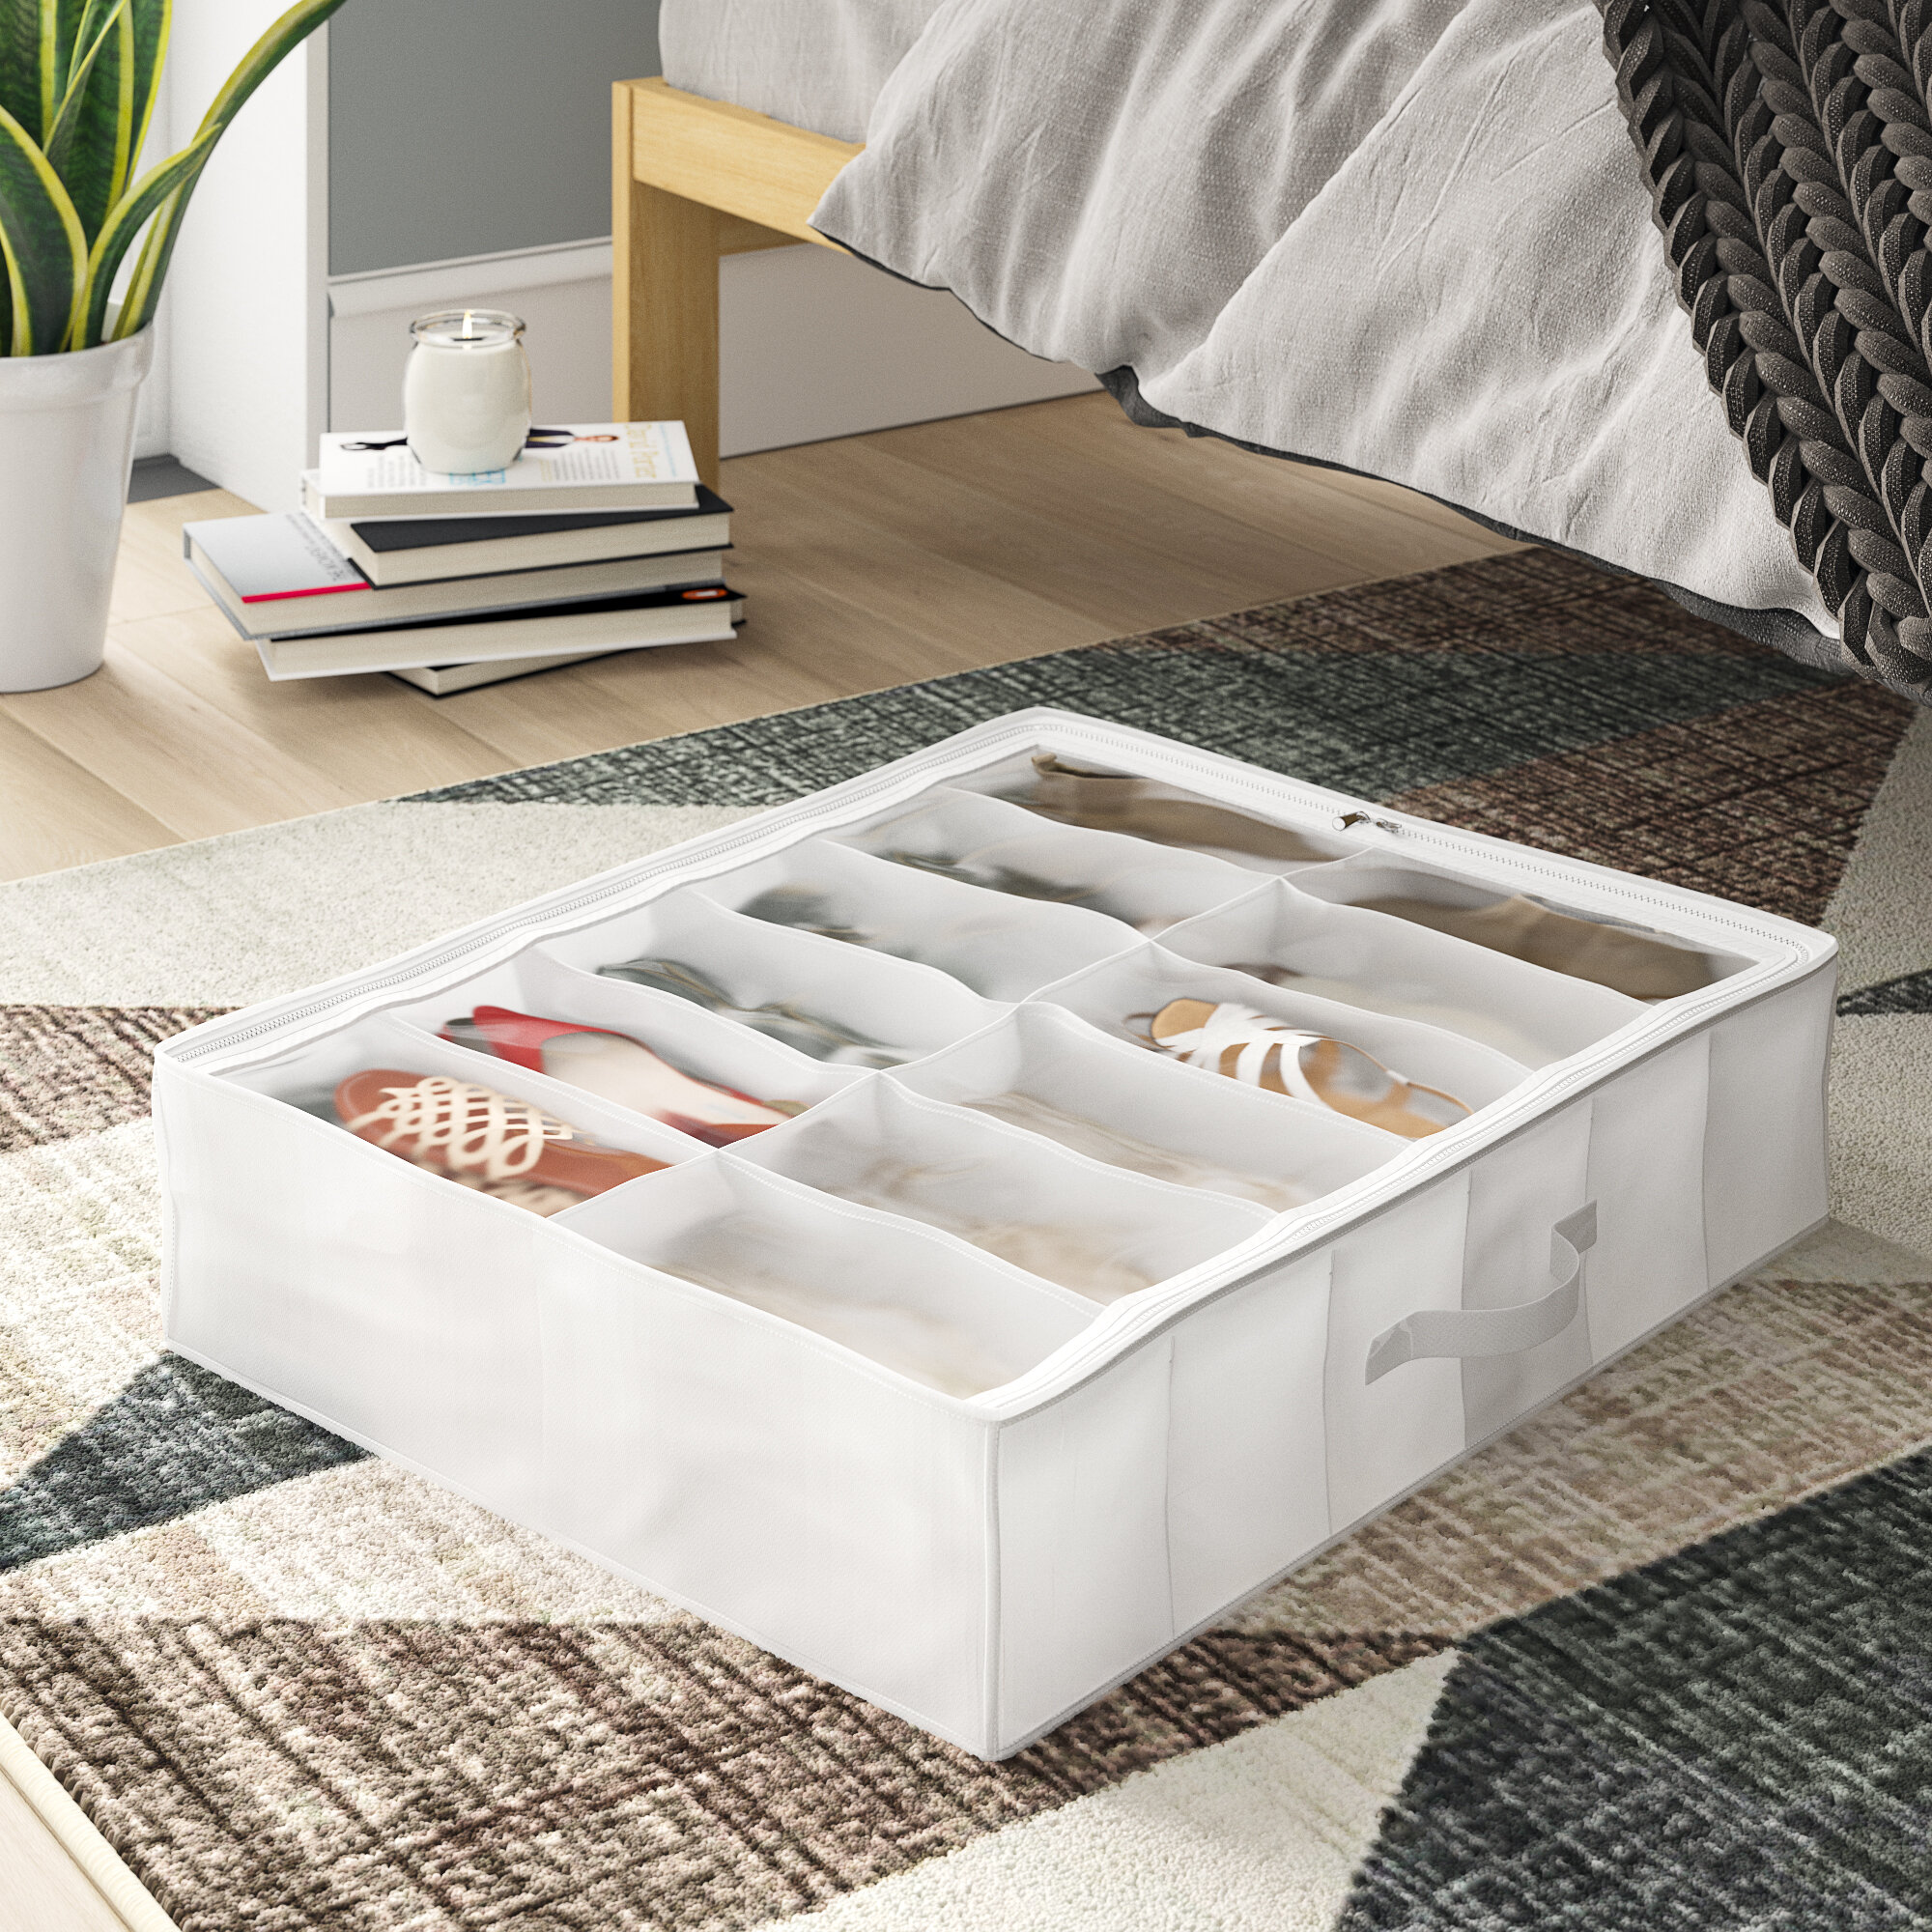 Project Tidy Fabric Underbed Storage